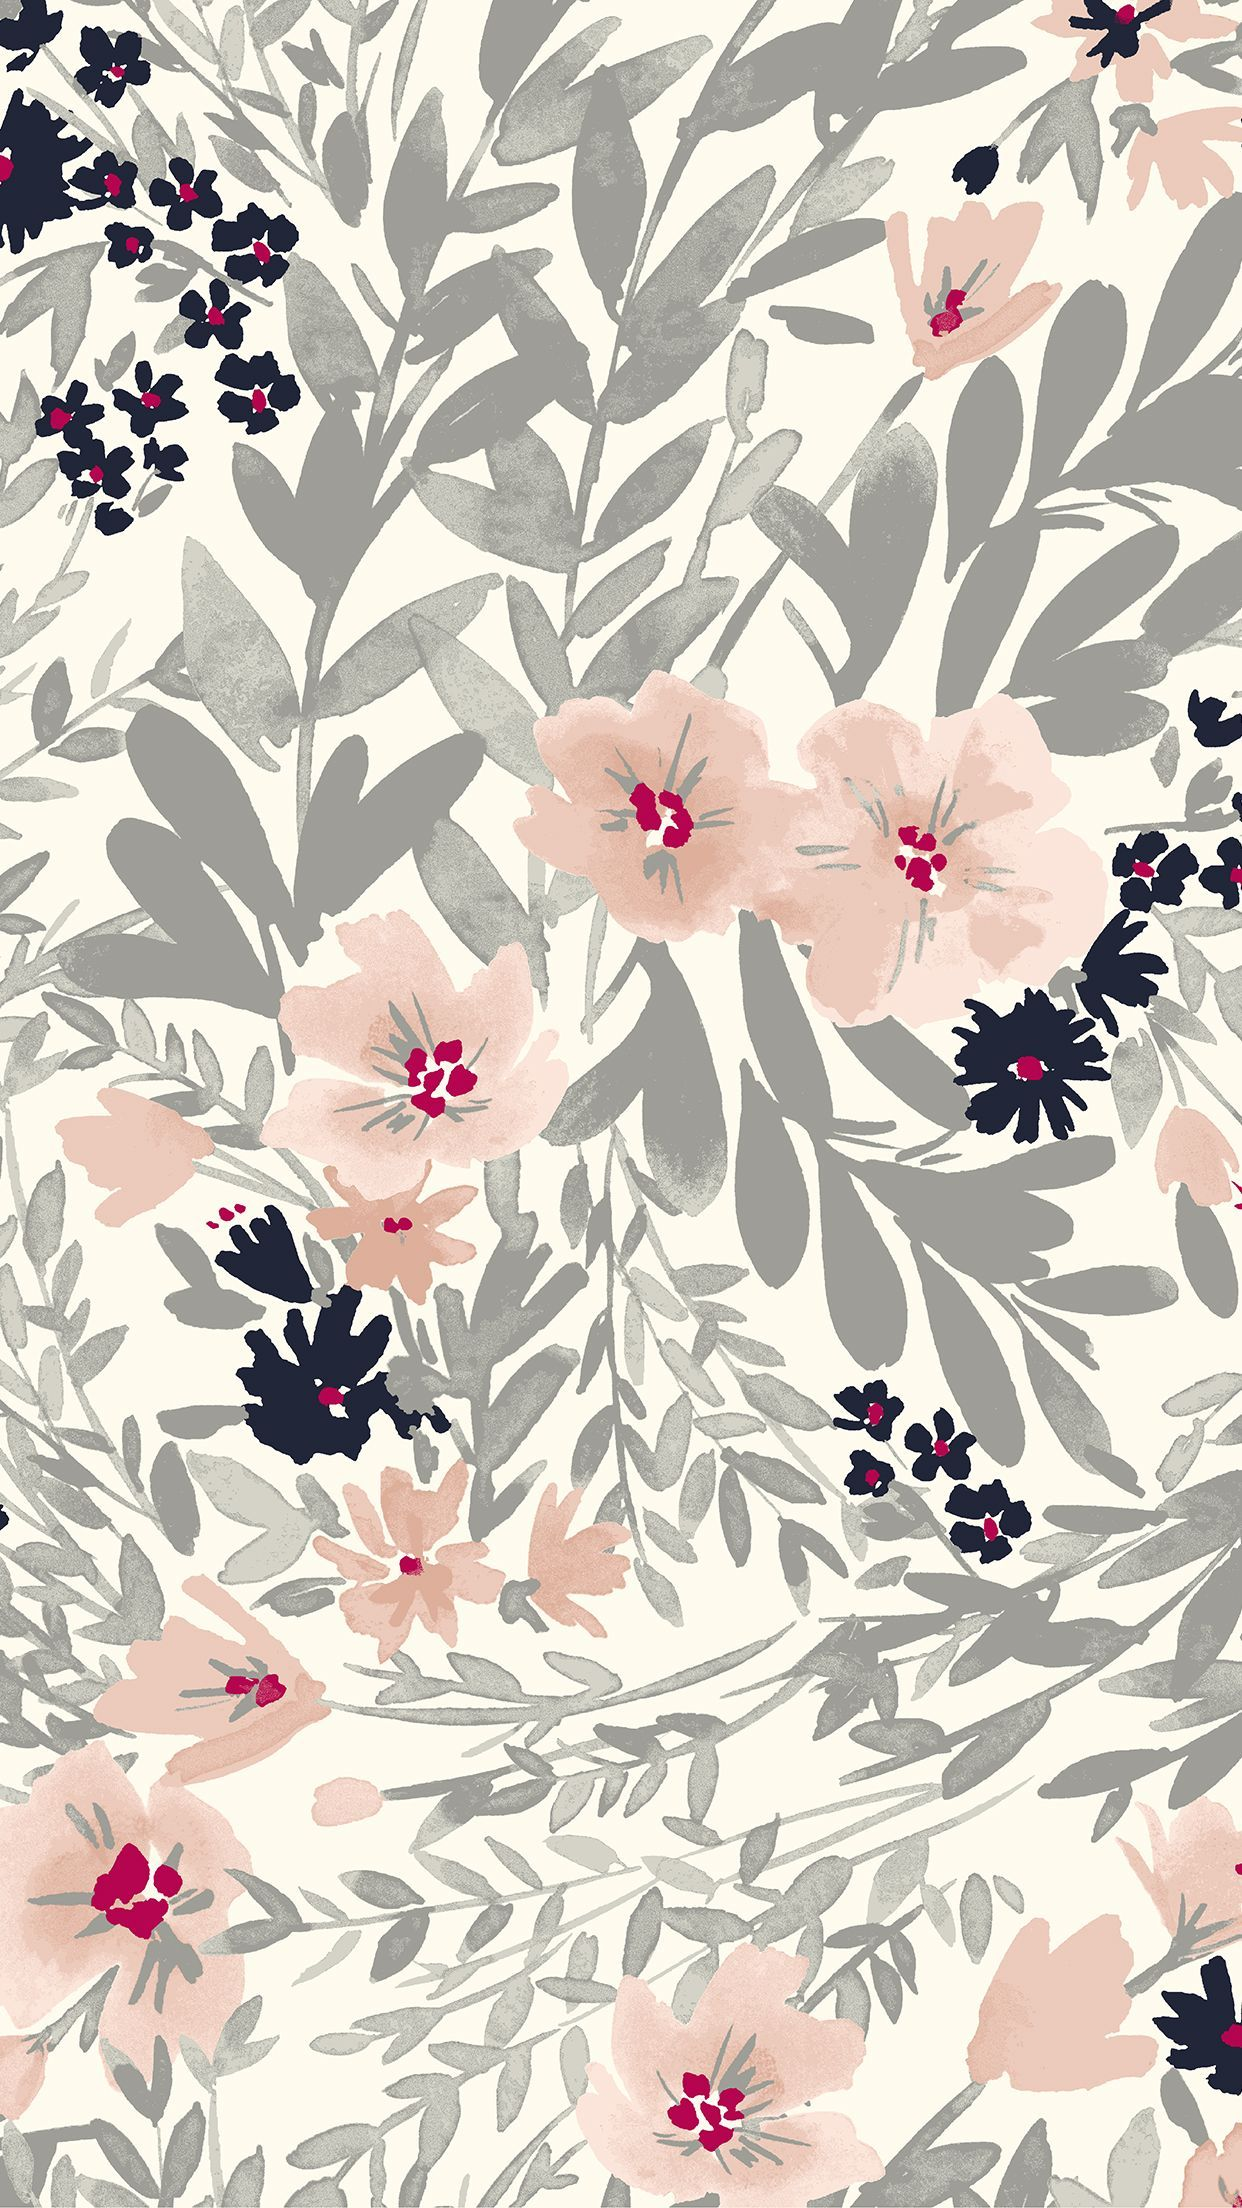 Floral Phone Picture design – Choose The Most Suitable Design For Your Phone